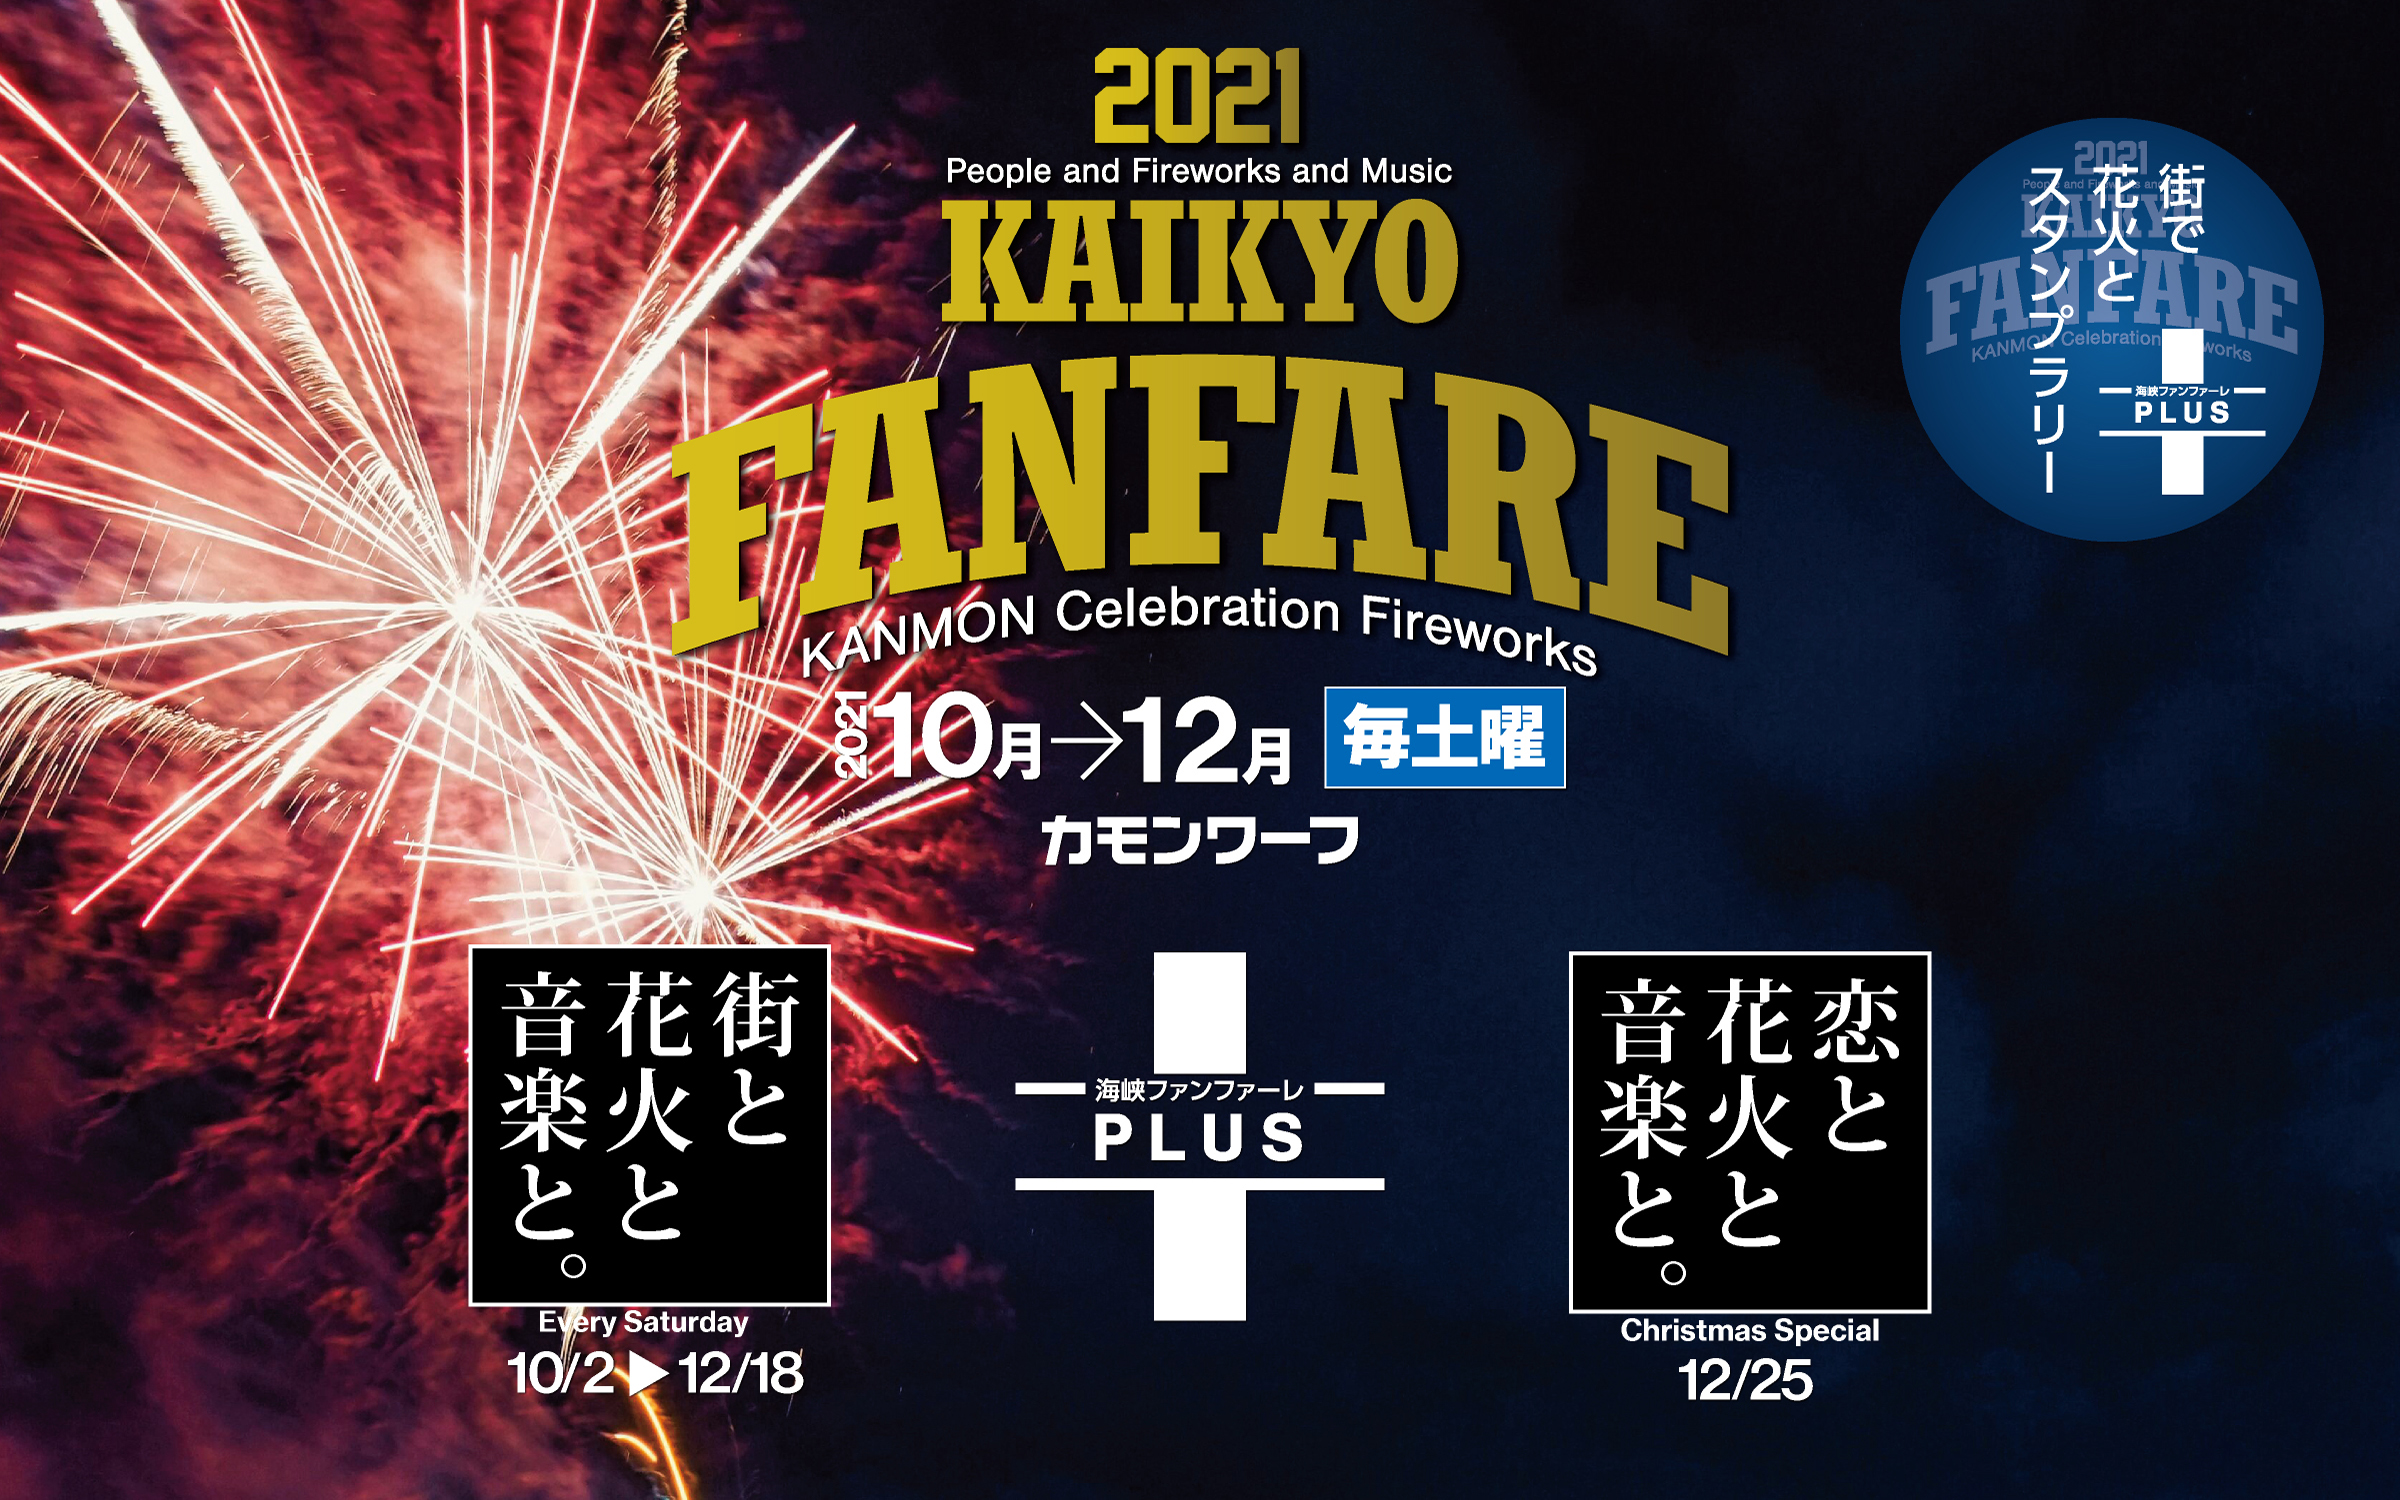 People and Fireworks and Music 海峡ファンファーレ 山口県下関市カモンワーフにて